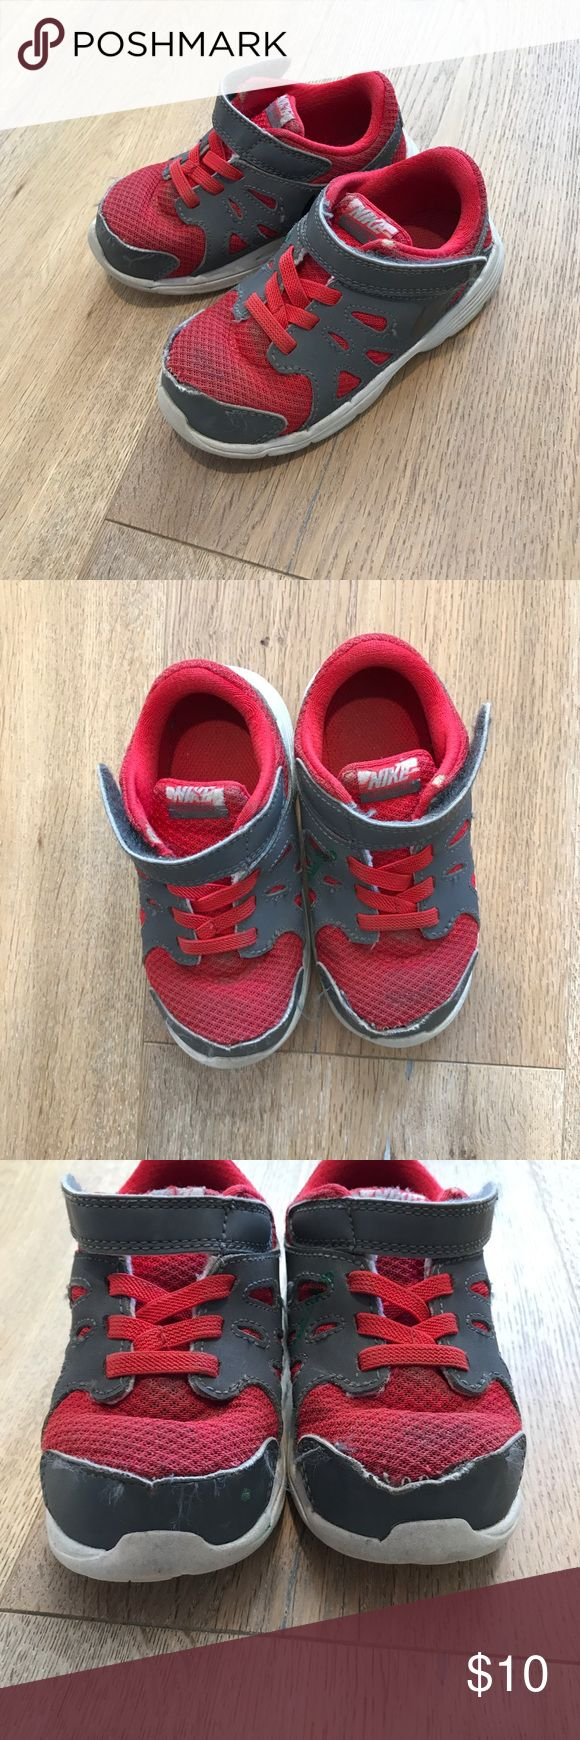 Nike Revolution 2 toddler running Shoes Red and grey Nike sneakers.  No laces to tie!  Just pull on and fasten with Velcro strap.  Play condition for Overall wear.  Still life left!  Size 8c. Nike Shoes Sneakers